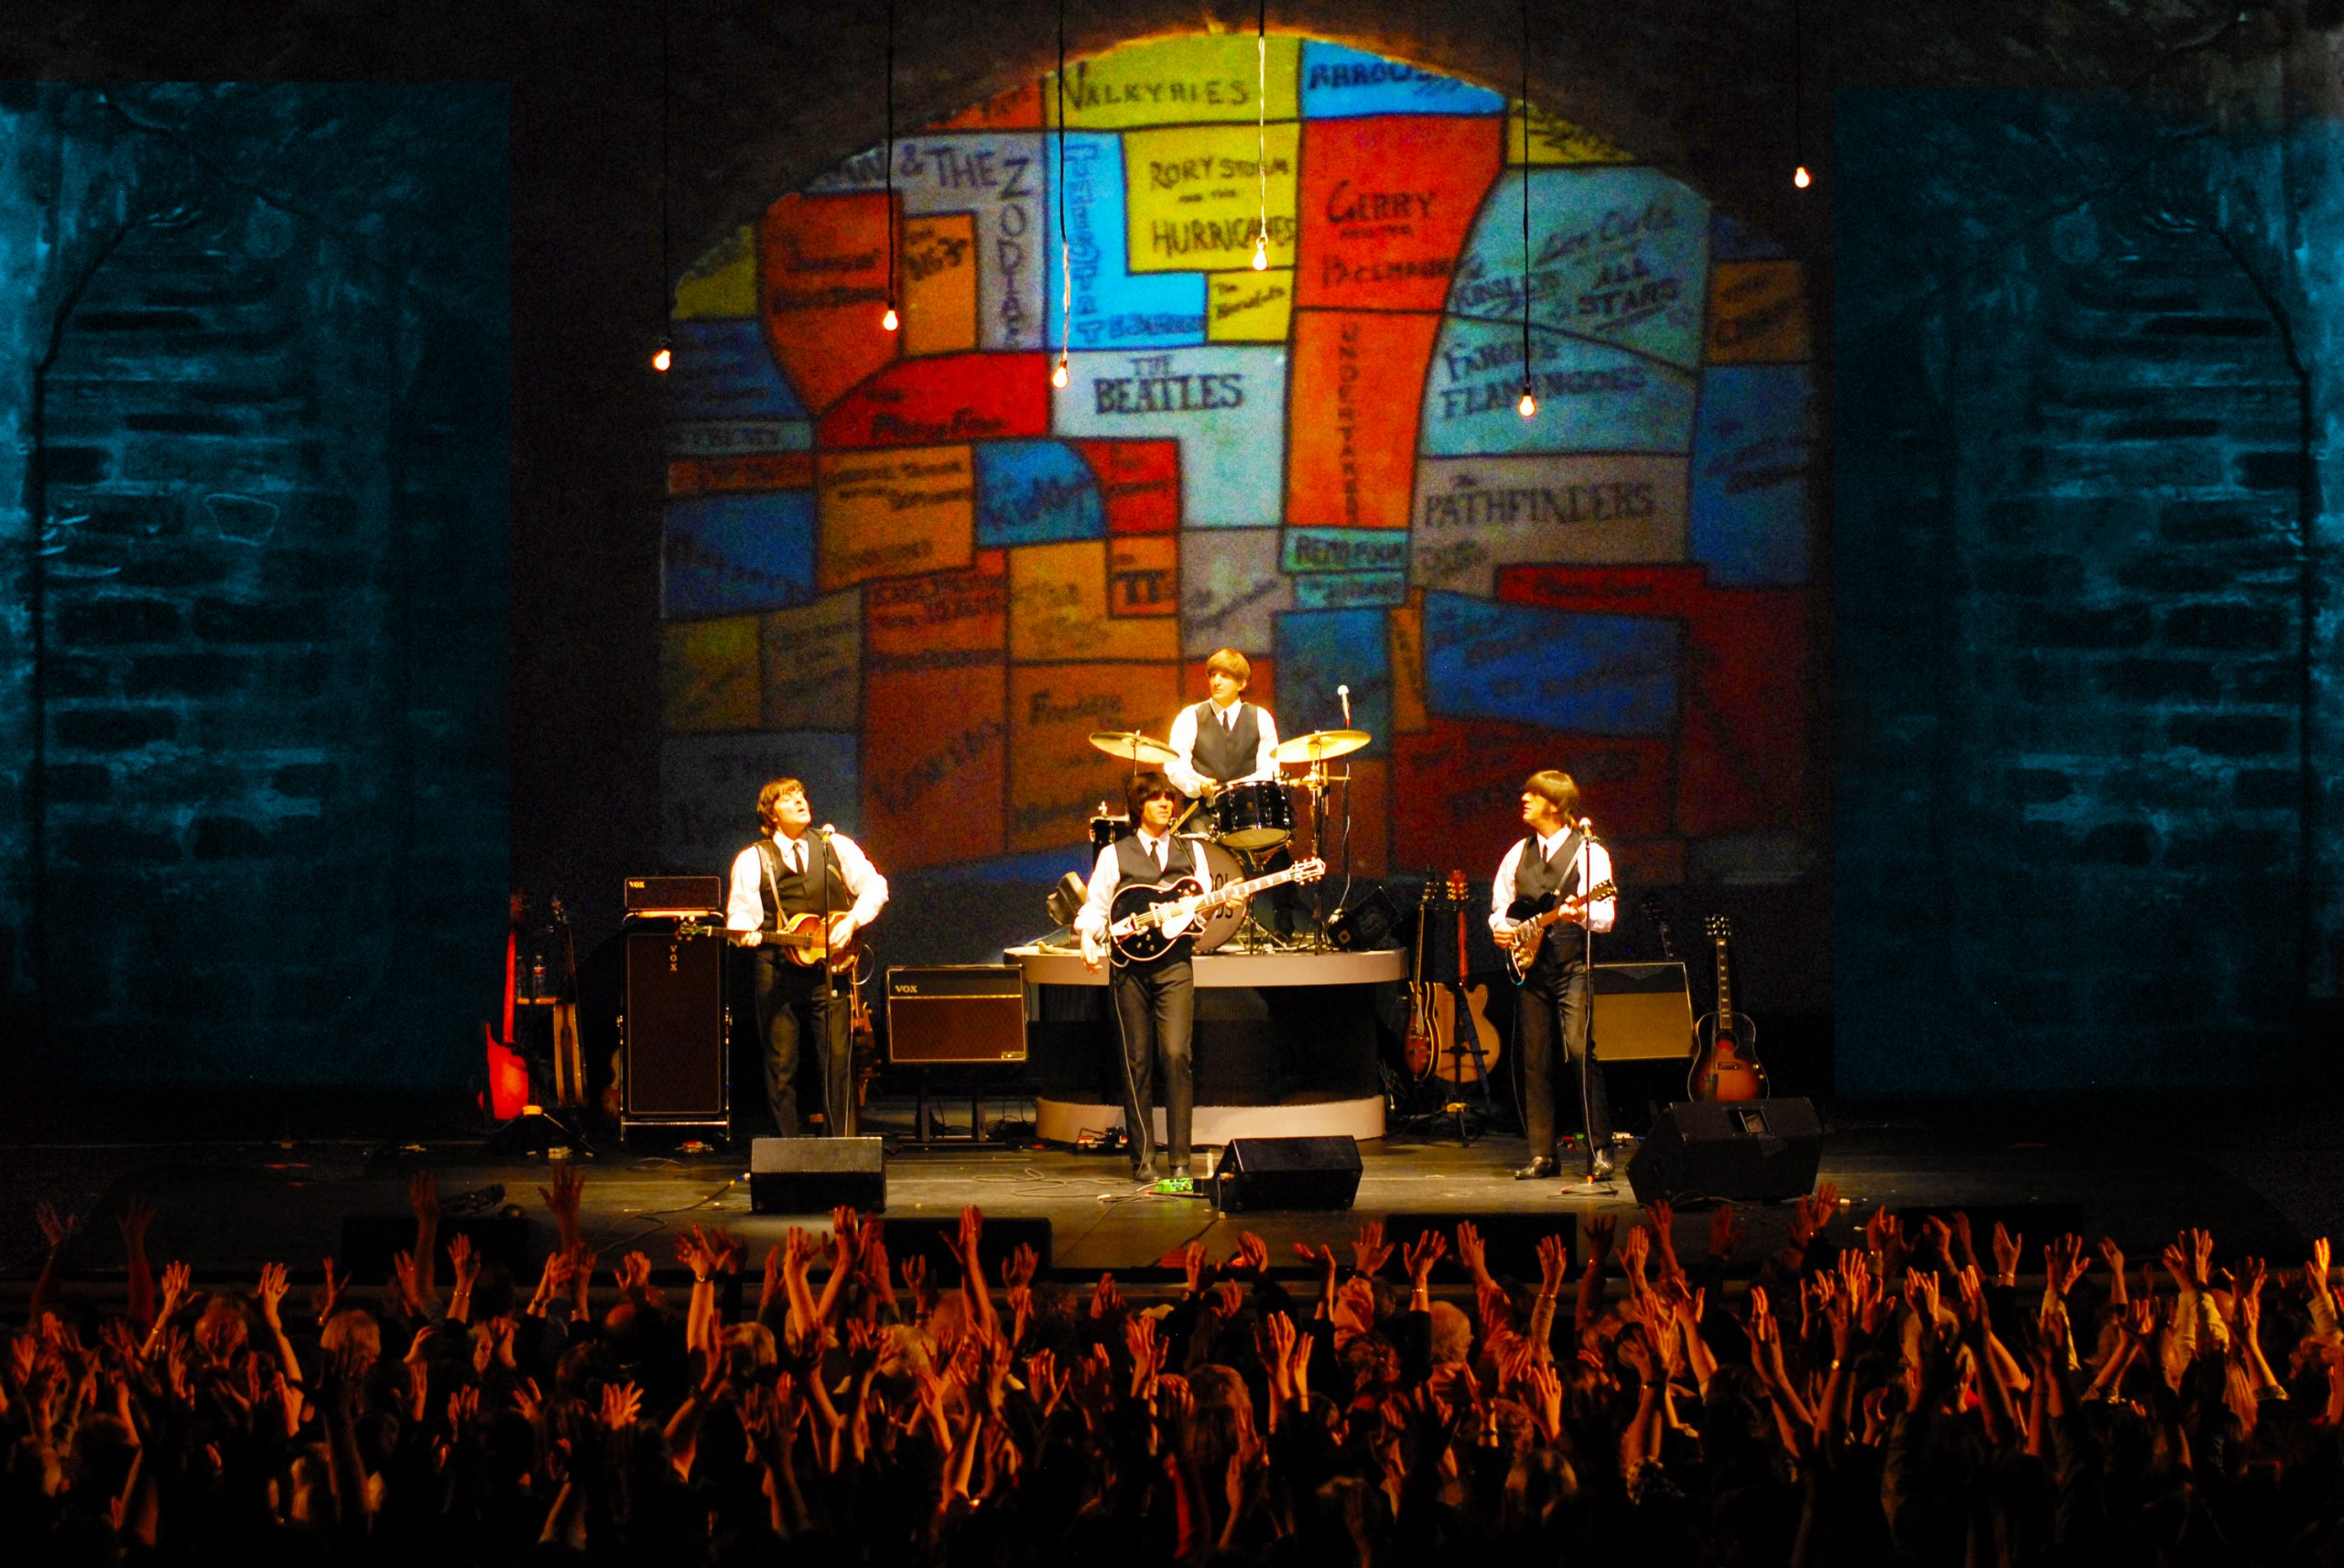 Liverpool legends coming soon to the Lyric Theatre for 'The Complete Beatles Experience'